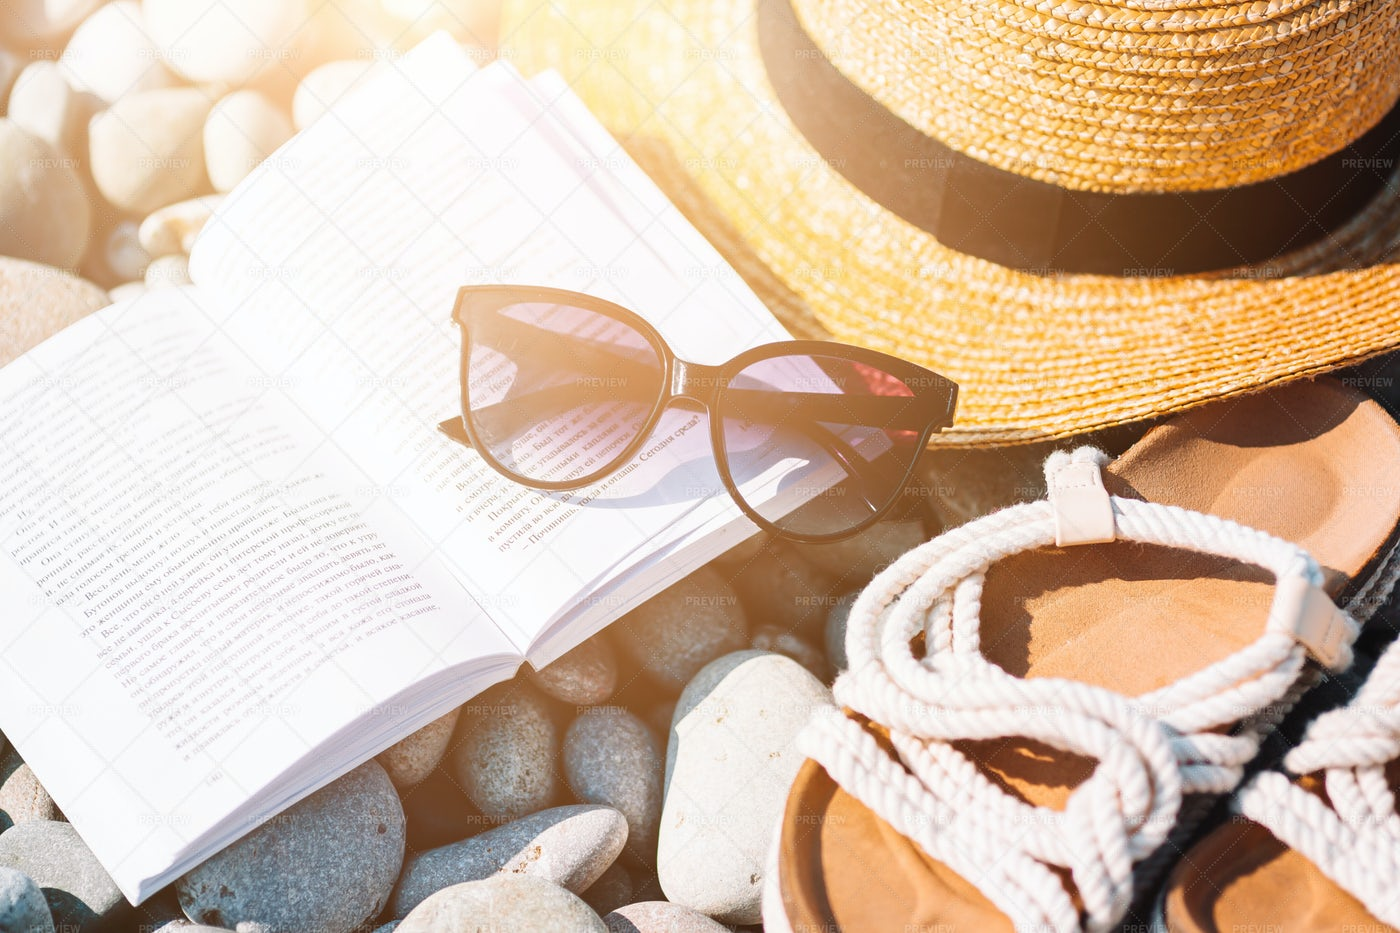 Beach Hat And Book: Stock Photos